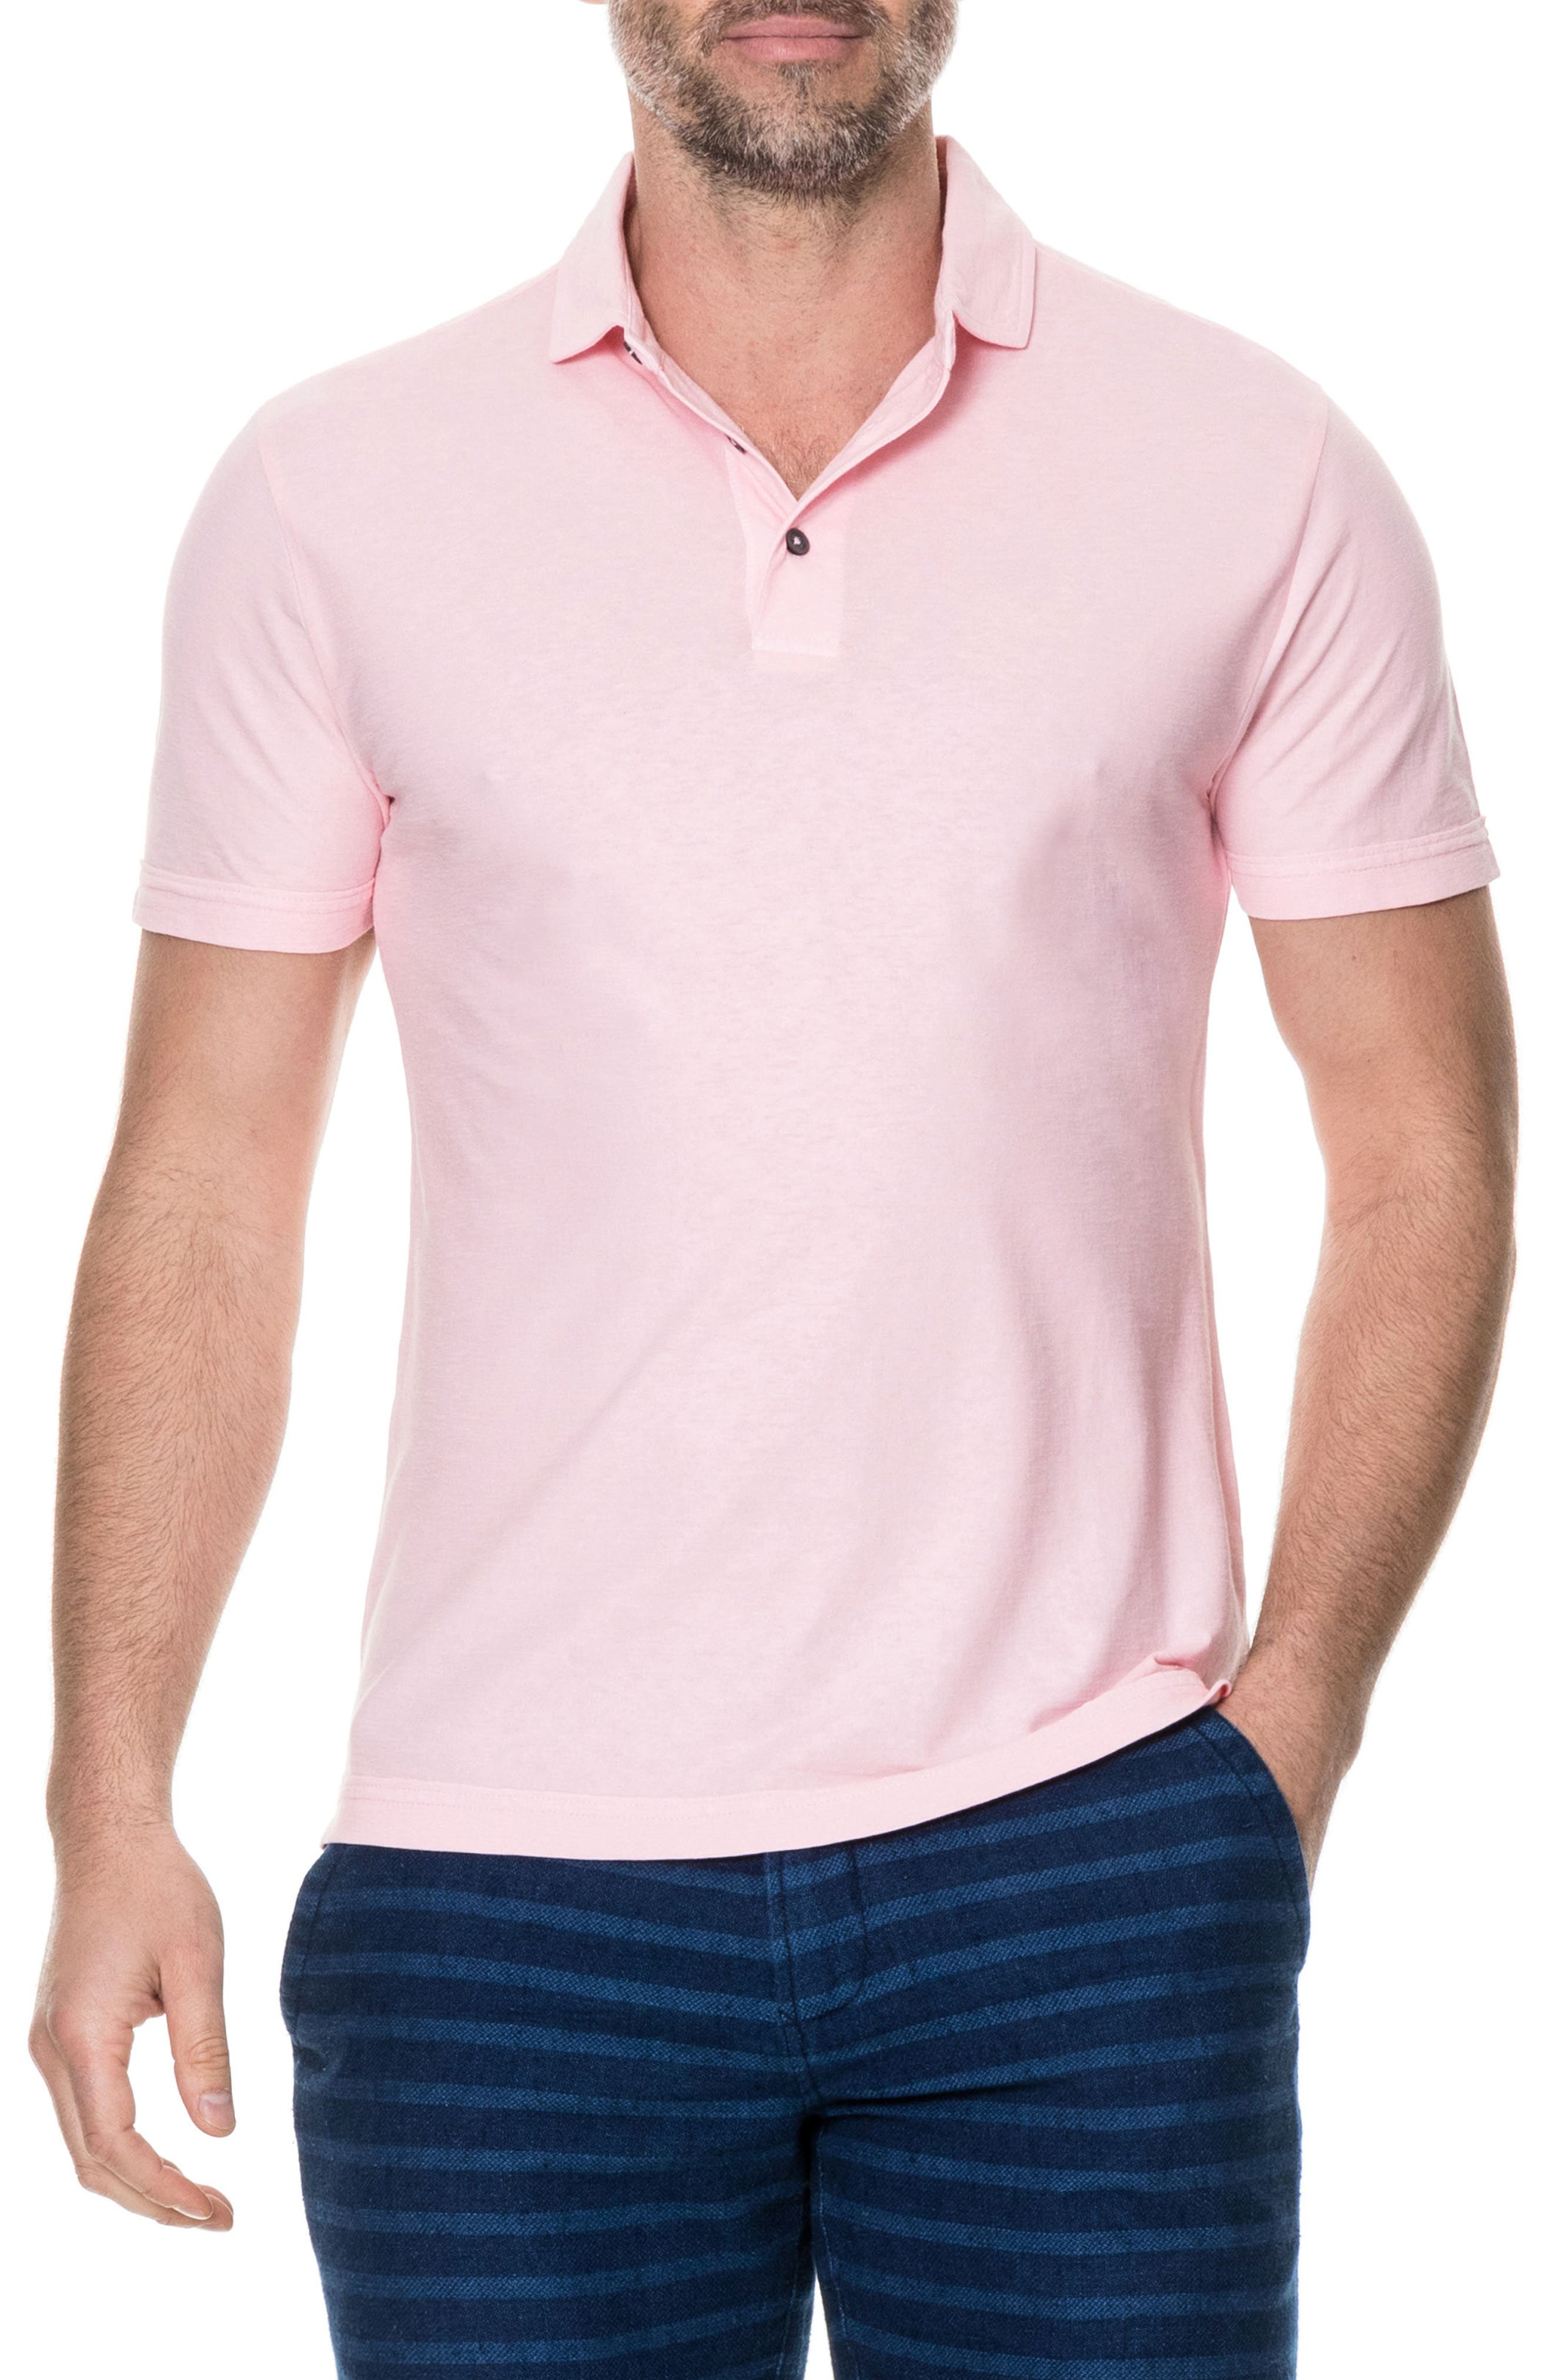 Wilsons Bay Sports Fit Polo,                             Main thumbnail 1, color,                             ROSE